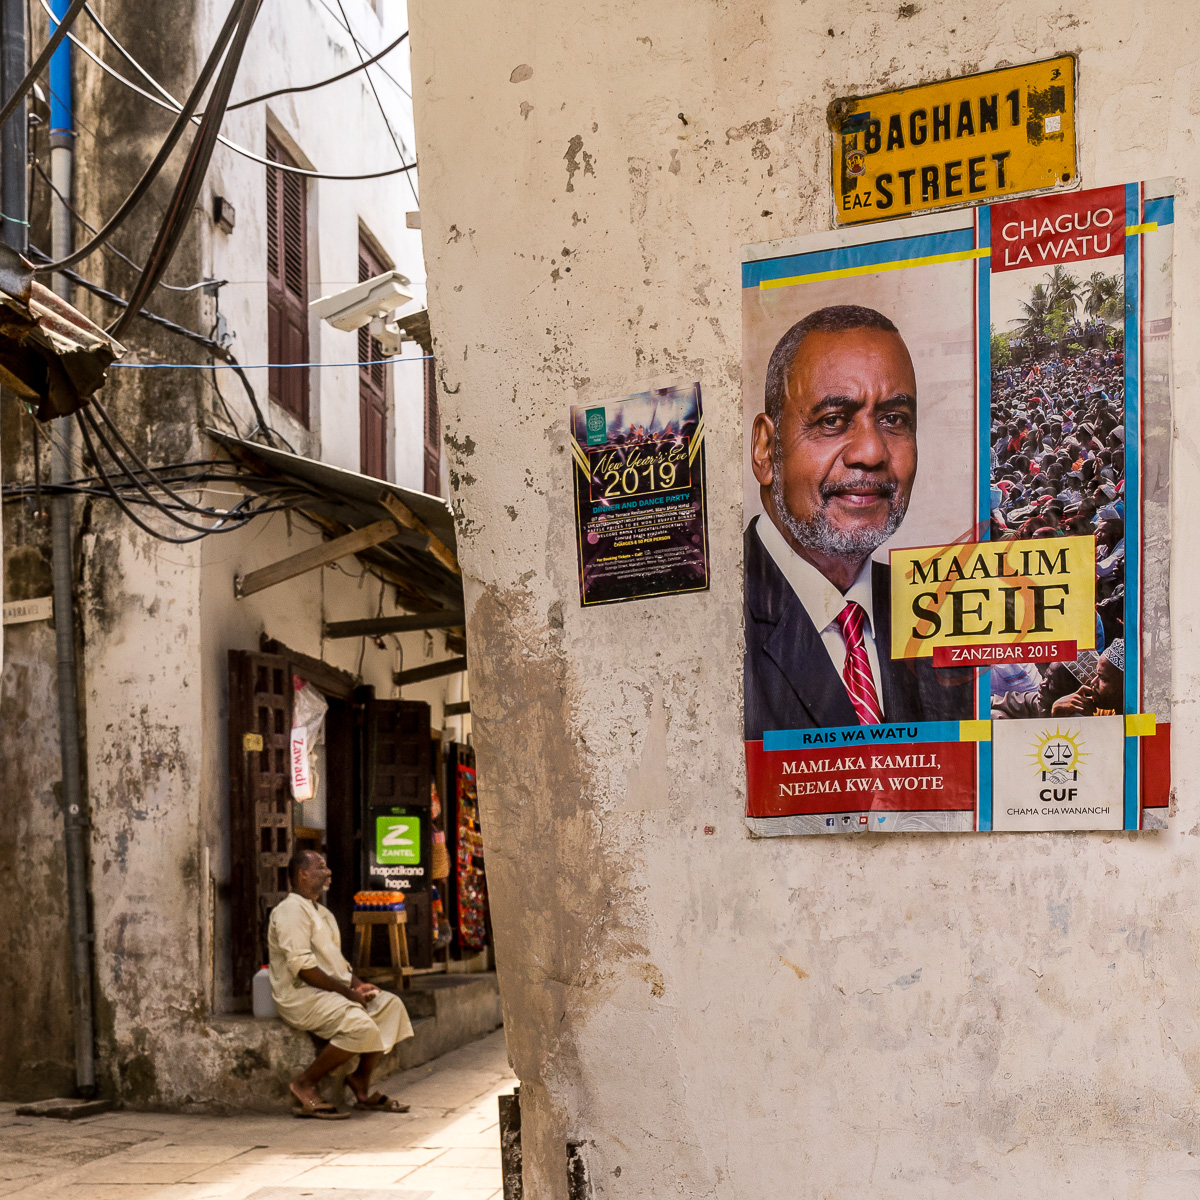 Political posters and CCTVs in Stone Town, Zanzibar. © Andy Morgan